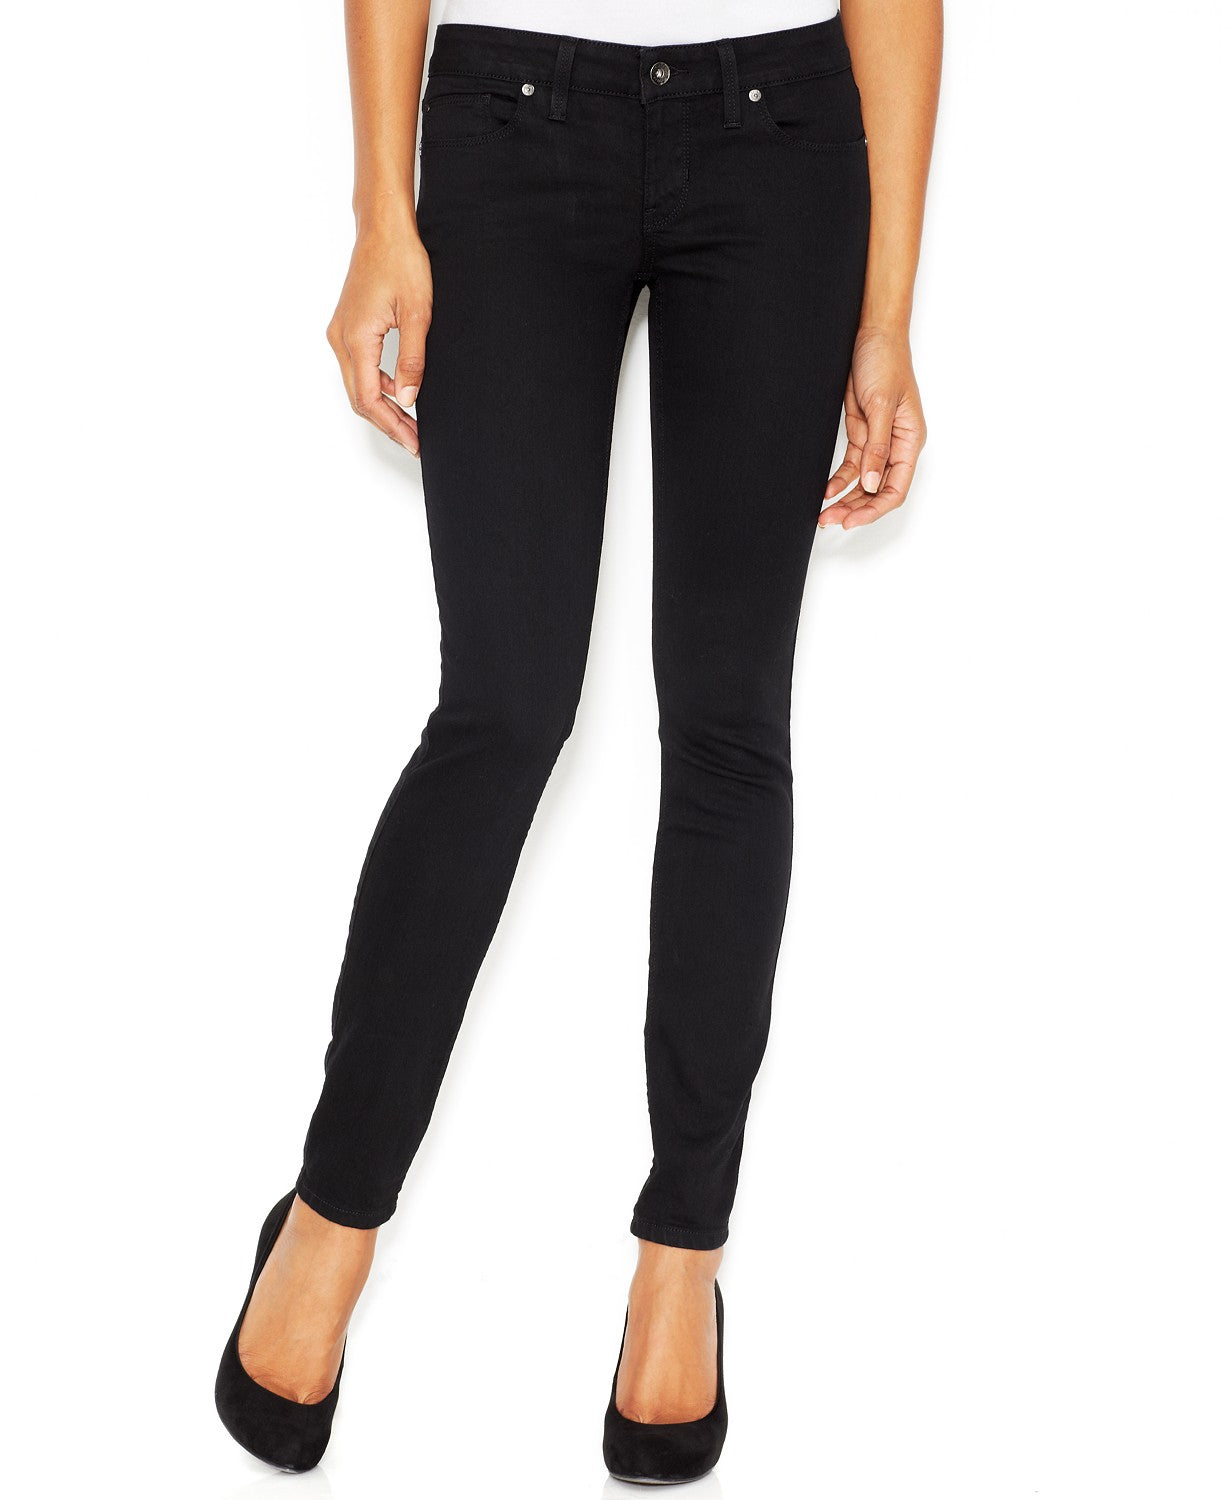 GUESS Women's Low-Rise Skinny Jeans Silicon Silicone 30